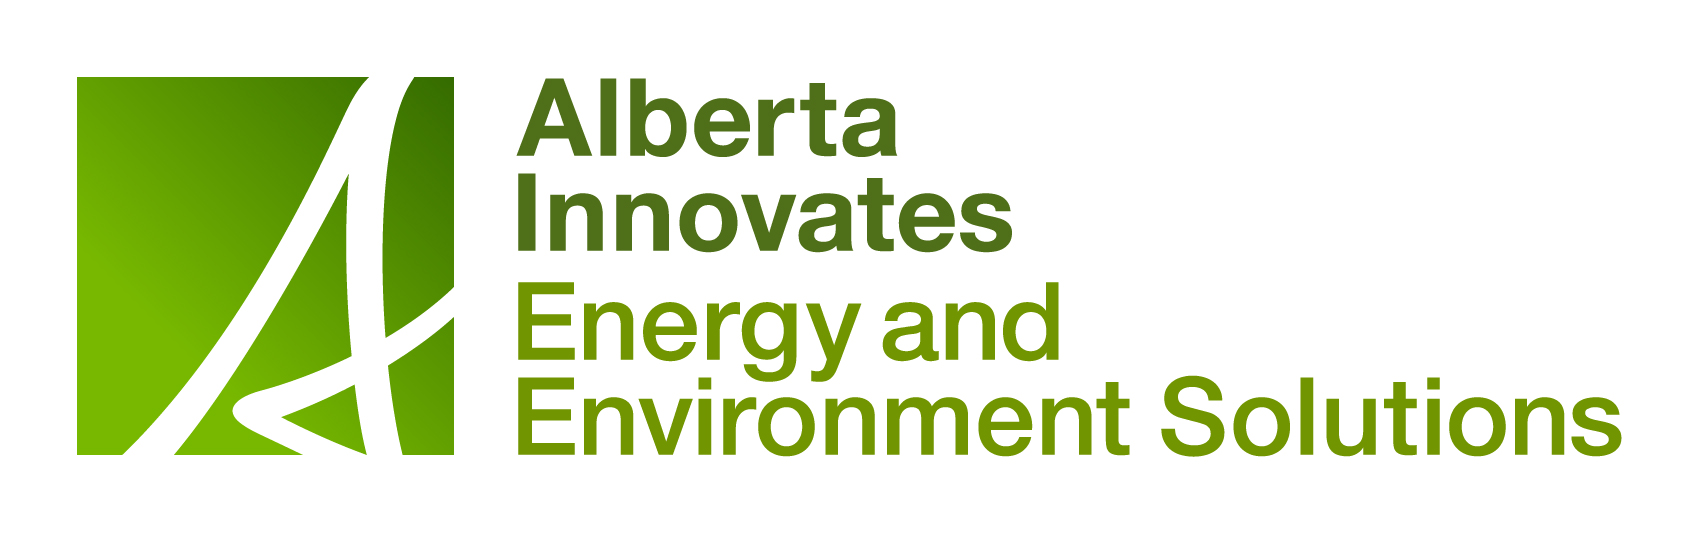 Alberta Innovates - Energy & Environment Solutions